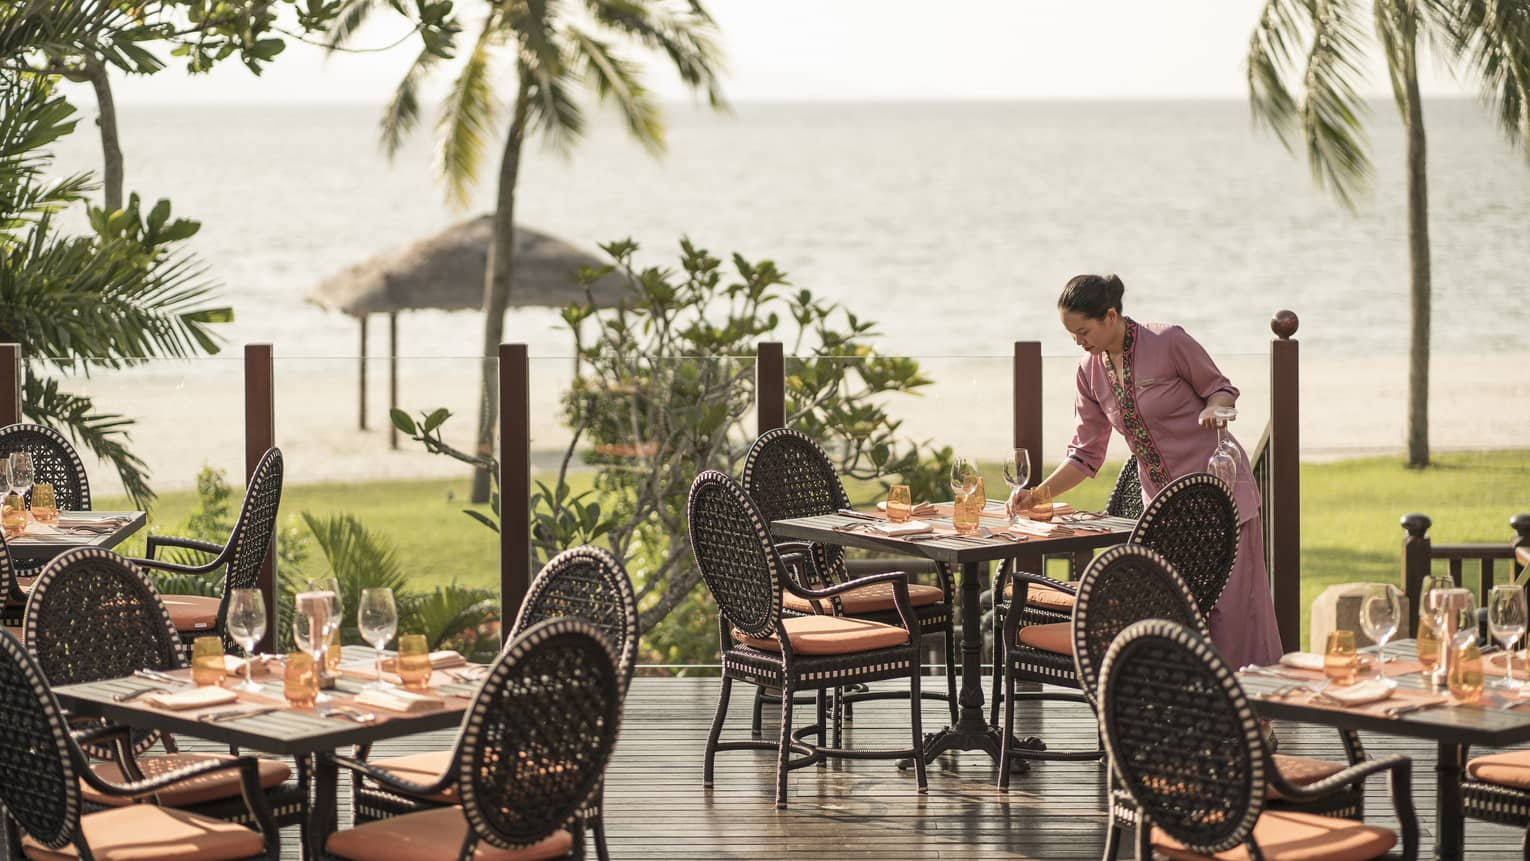 A server at Ikan Ikan sets a table on the outdoor terrace overlooking the beach